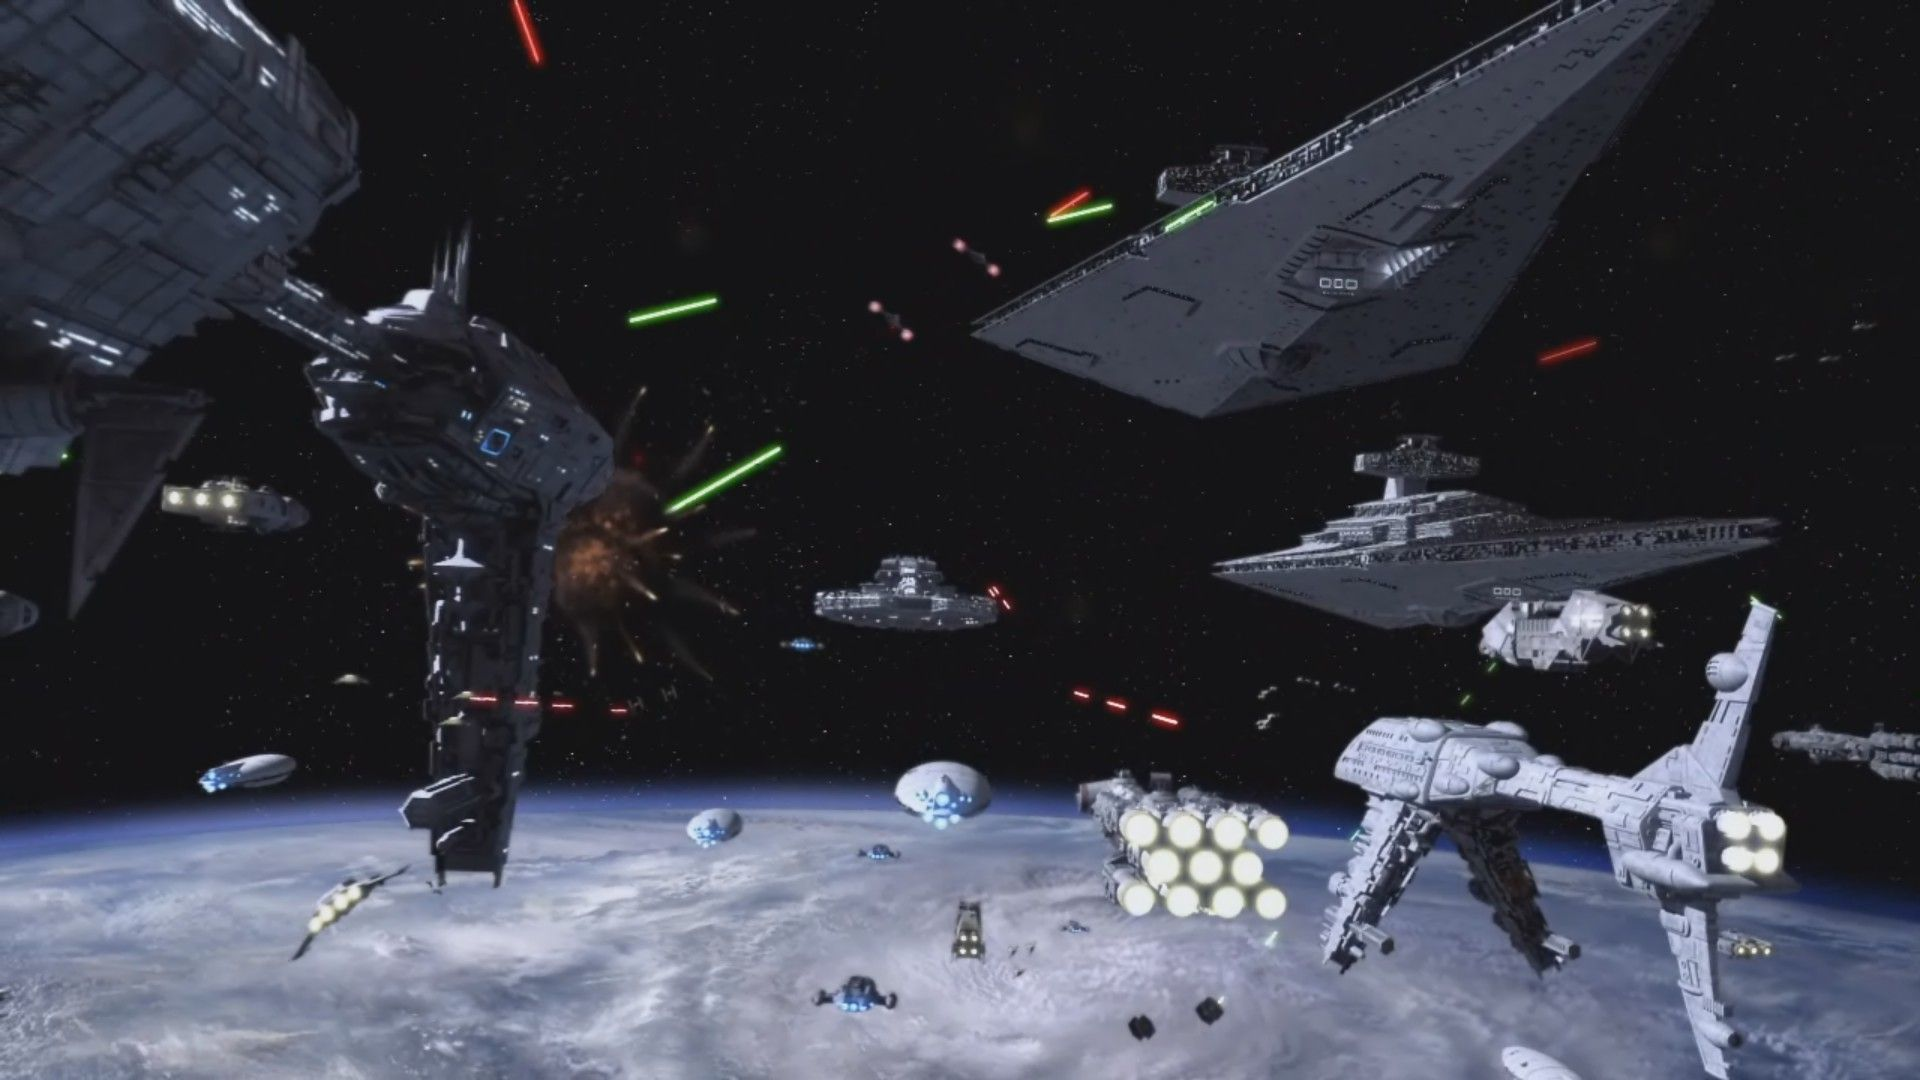 Star Wars Armada Wallpapers Top Free Star Wars Armada Backgrounds Wallpaperaccess